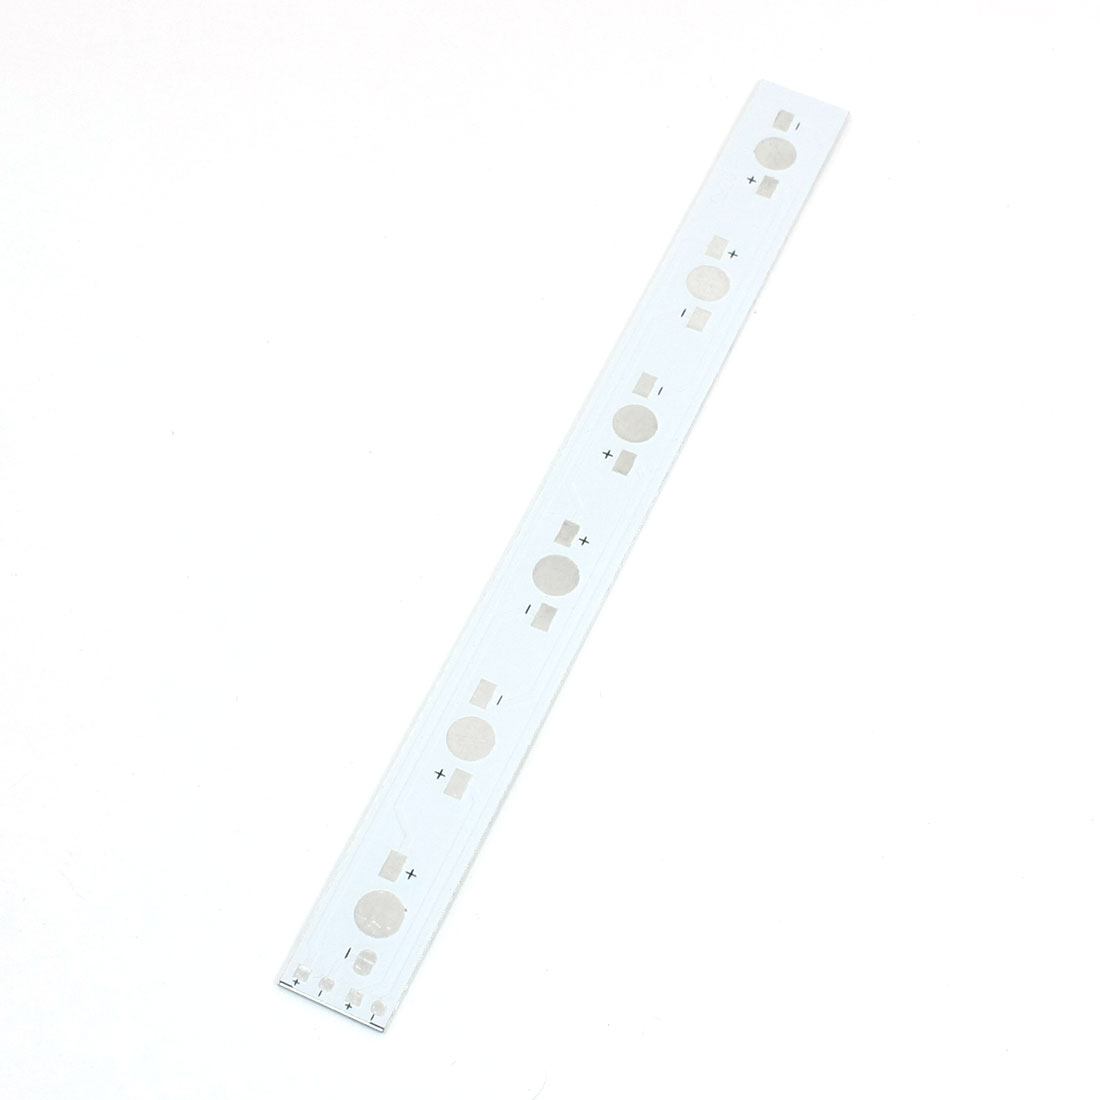 160mm x 15mm Aluminum PCB Circuit Board for 6 x 1W/3W/5W LED in Series